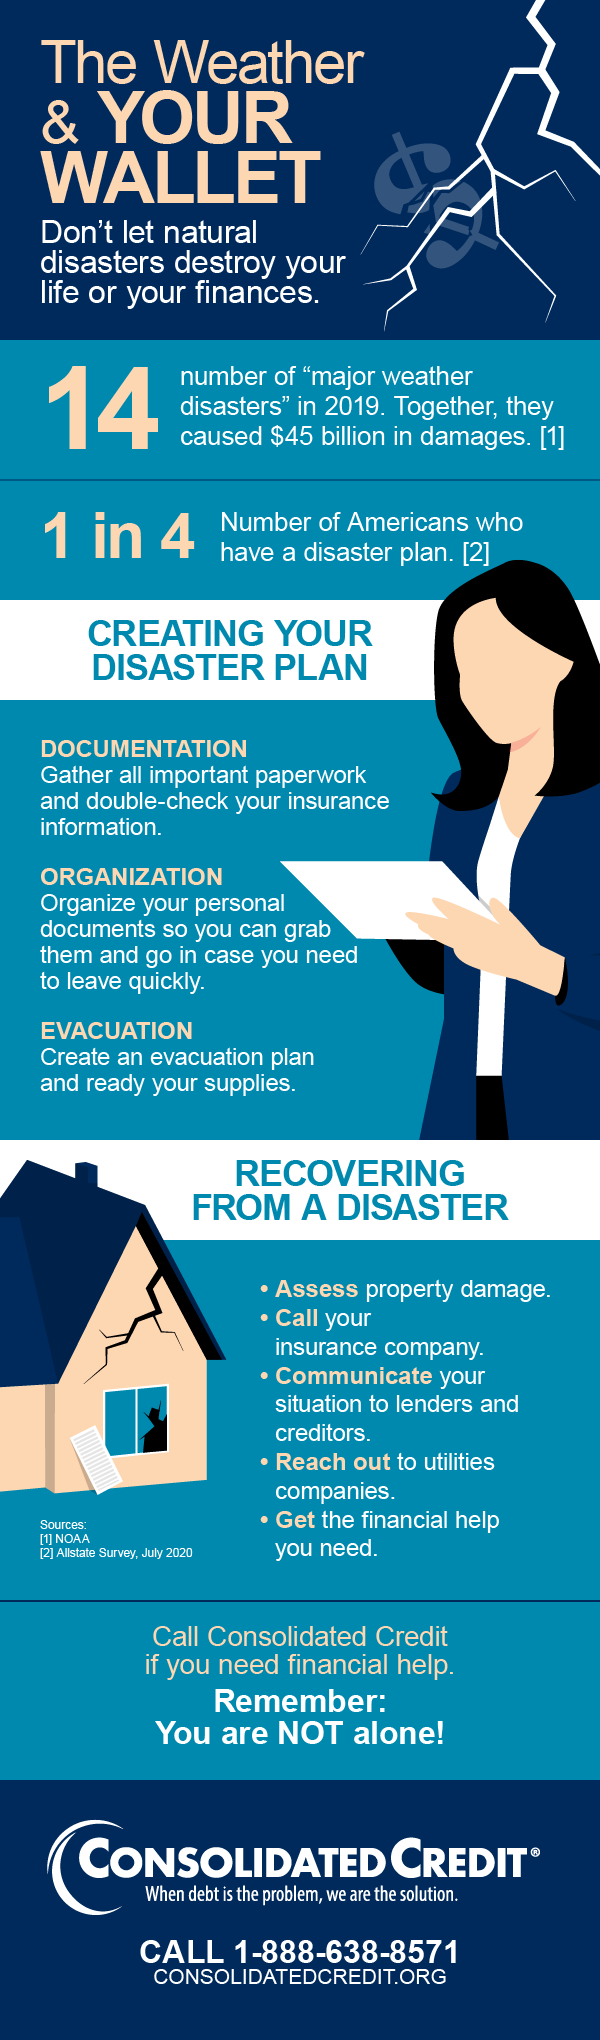 weather and your wallet infographic; financially preparing for a natural disaster